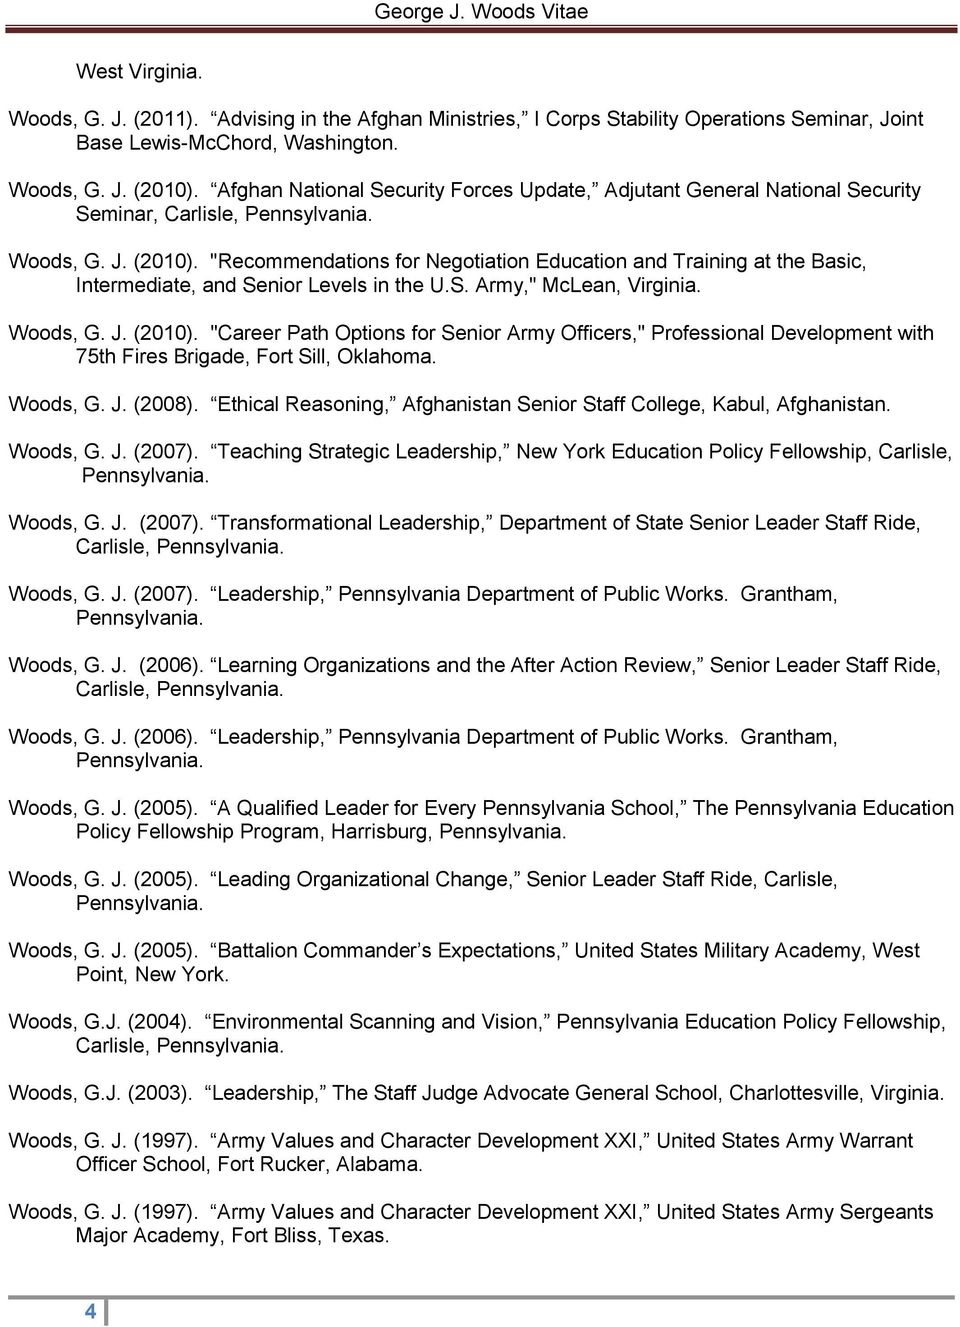 """Recommendations for Negotiation Education and Training at the Basic, Intermediate, and Senior Levels in the U.S. Army,"" McLean, Virginia. Woods, G. J. (2010)."